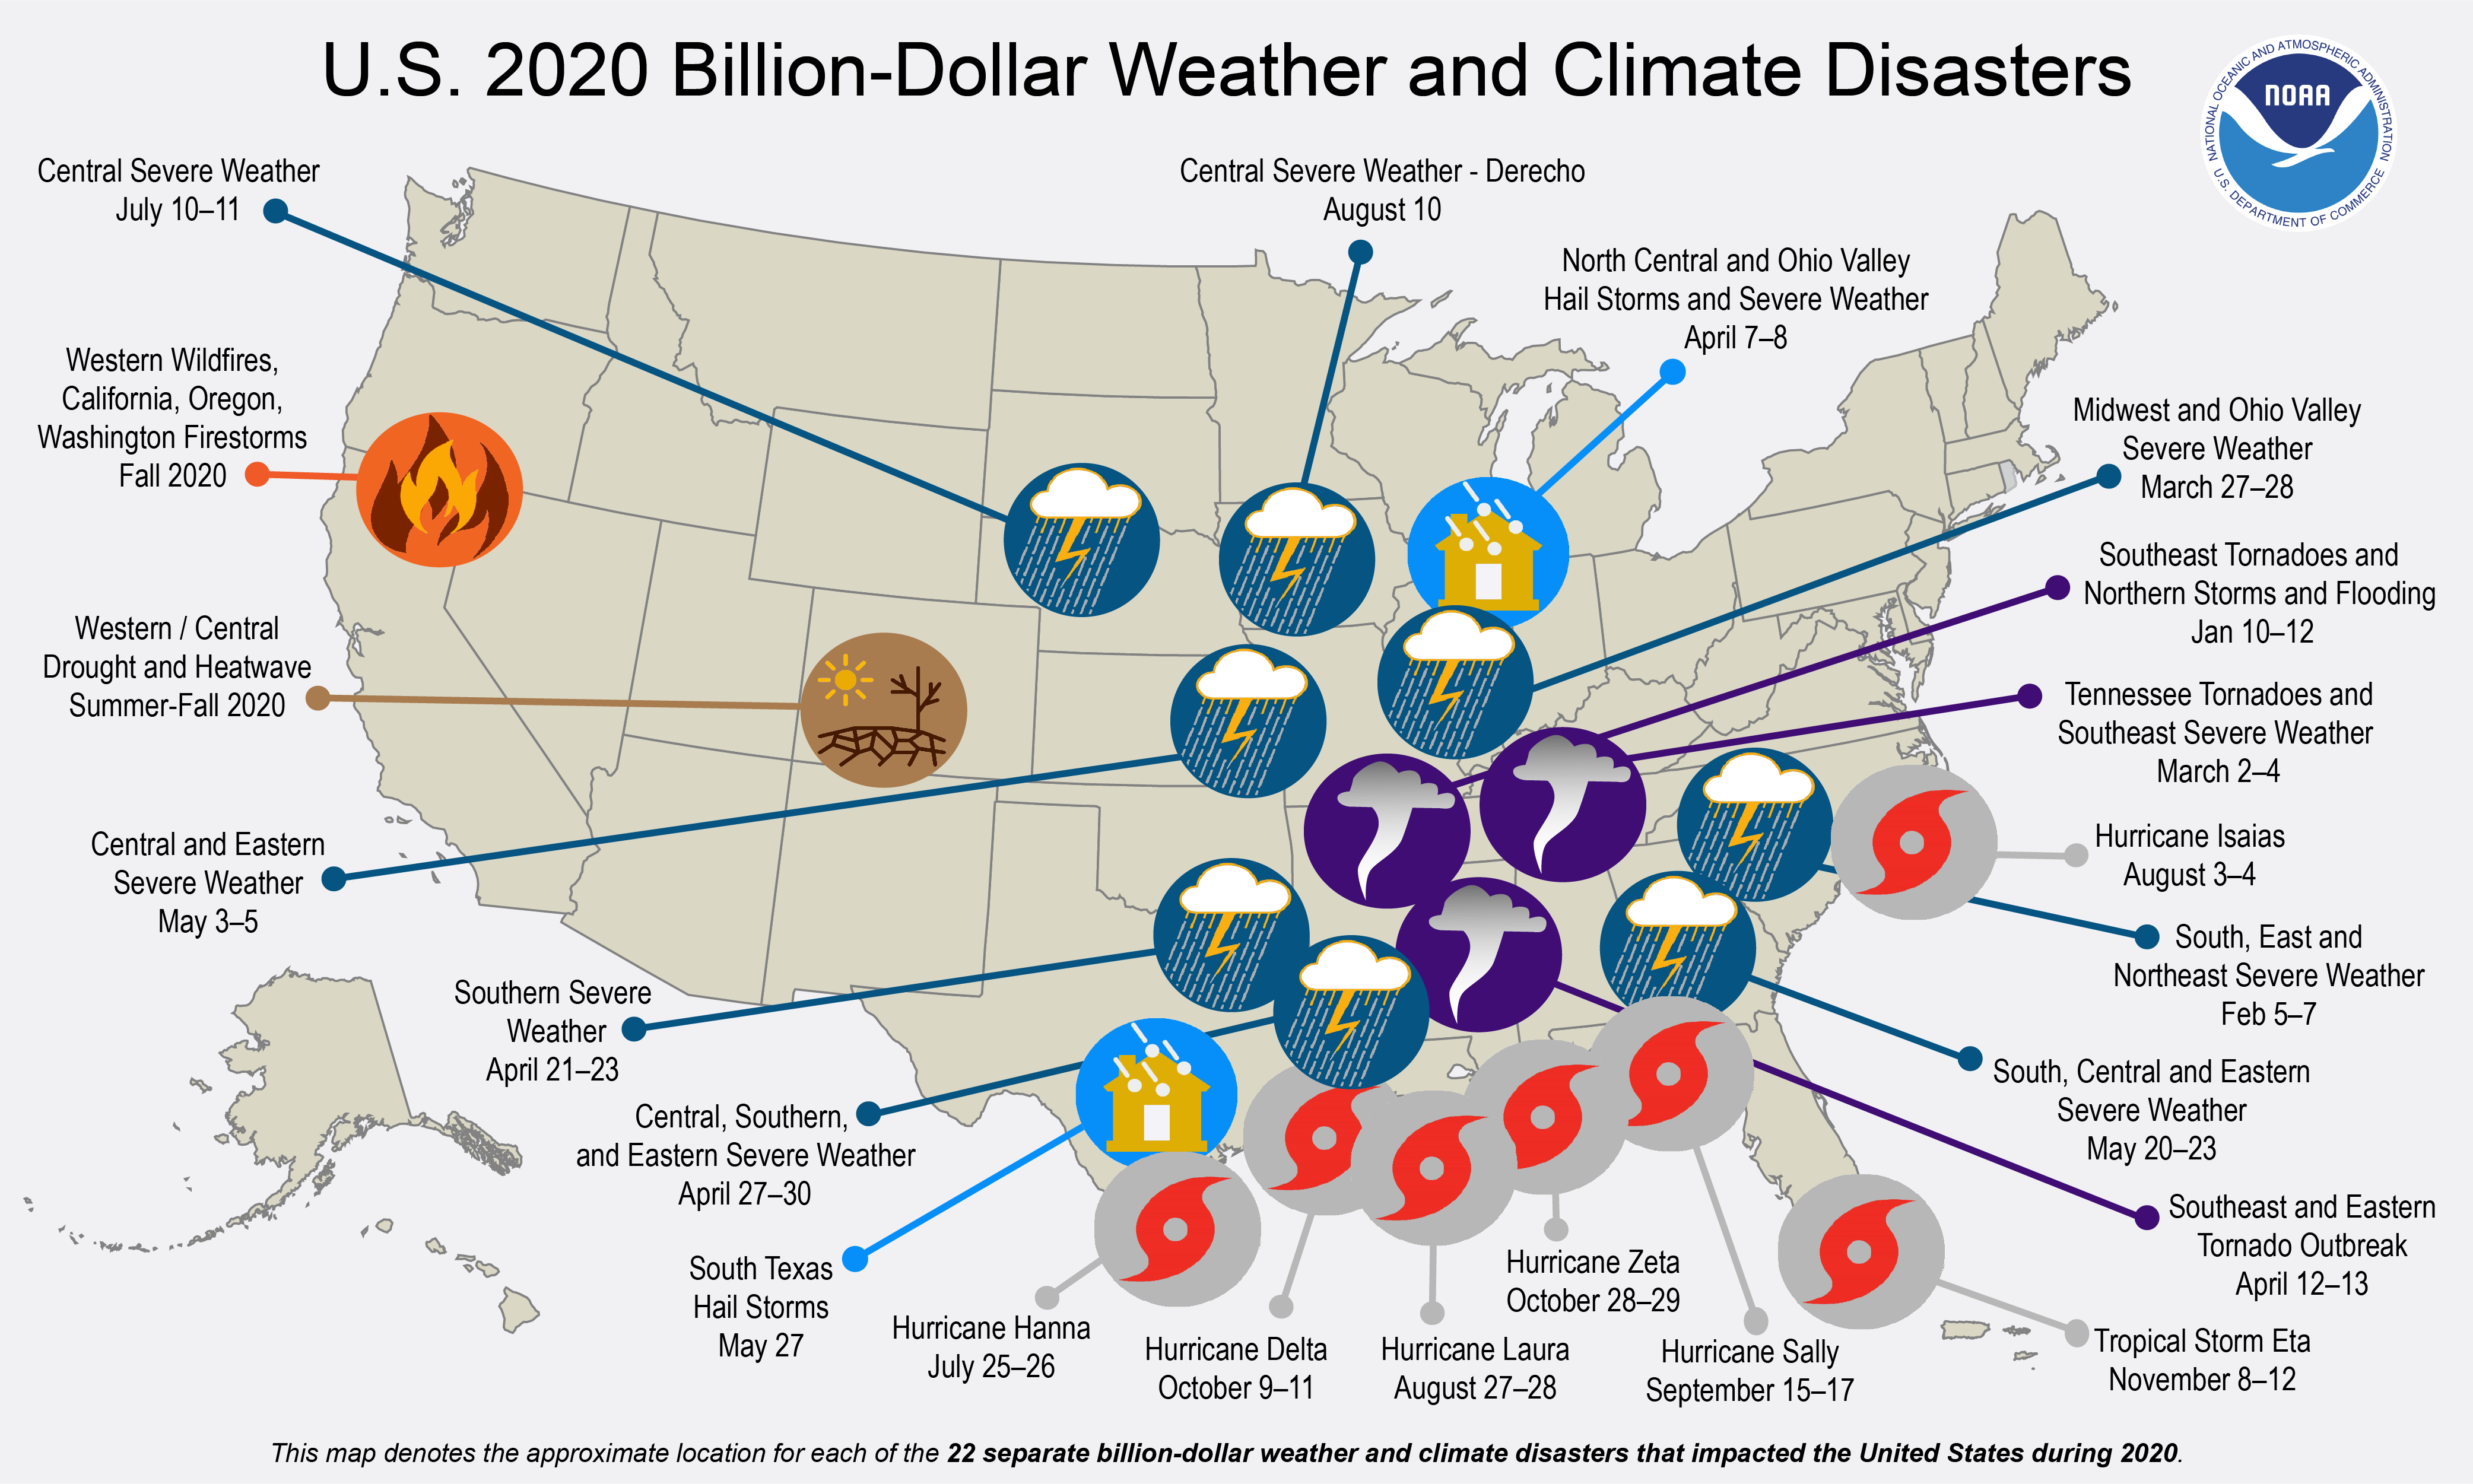 US map with icons showing the location and type of billion-dollar weather and climate disasters in 2020